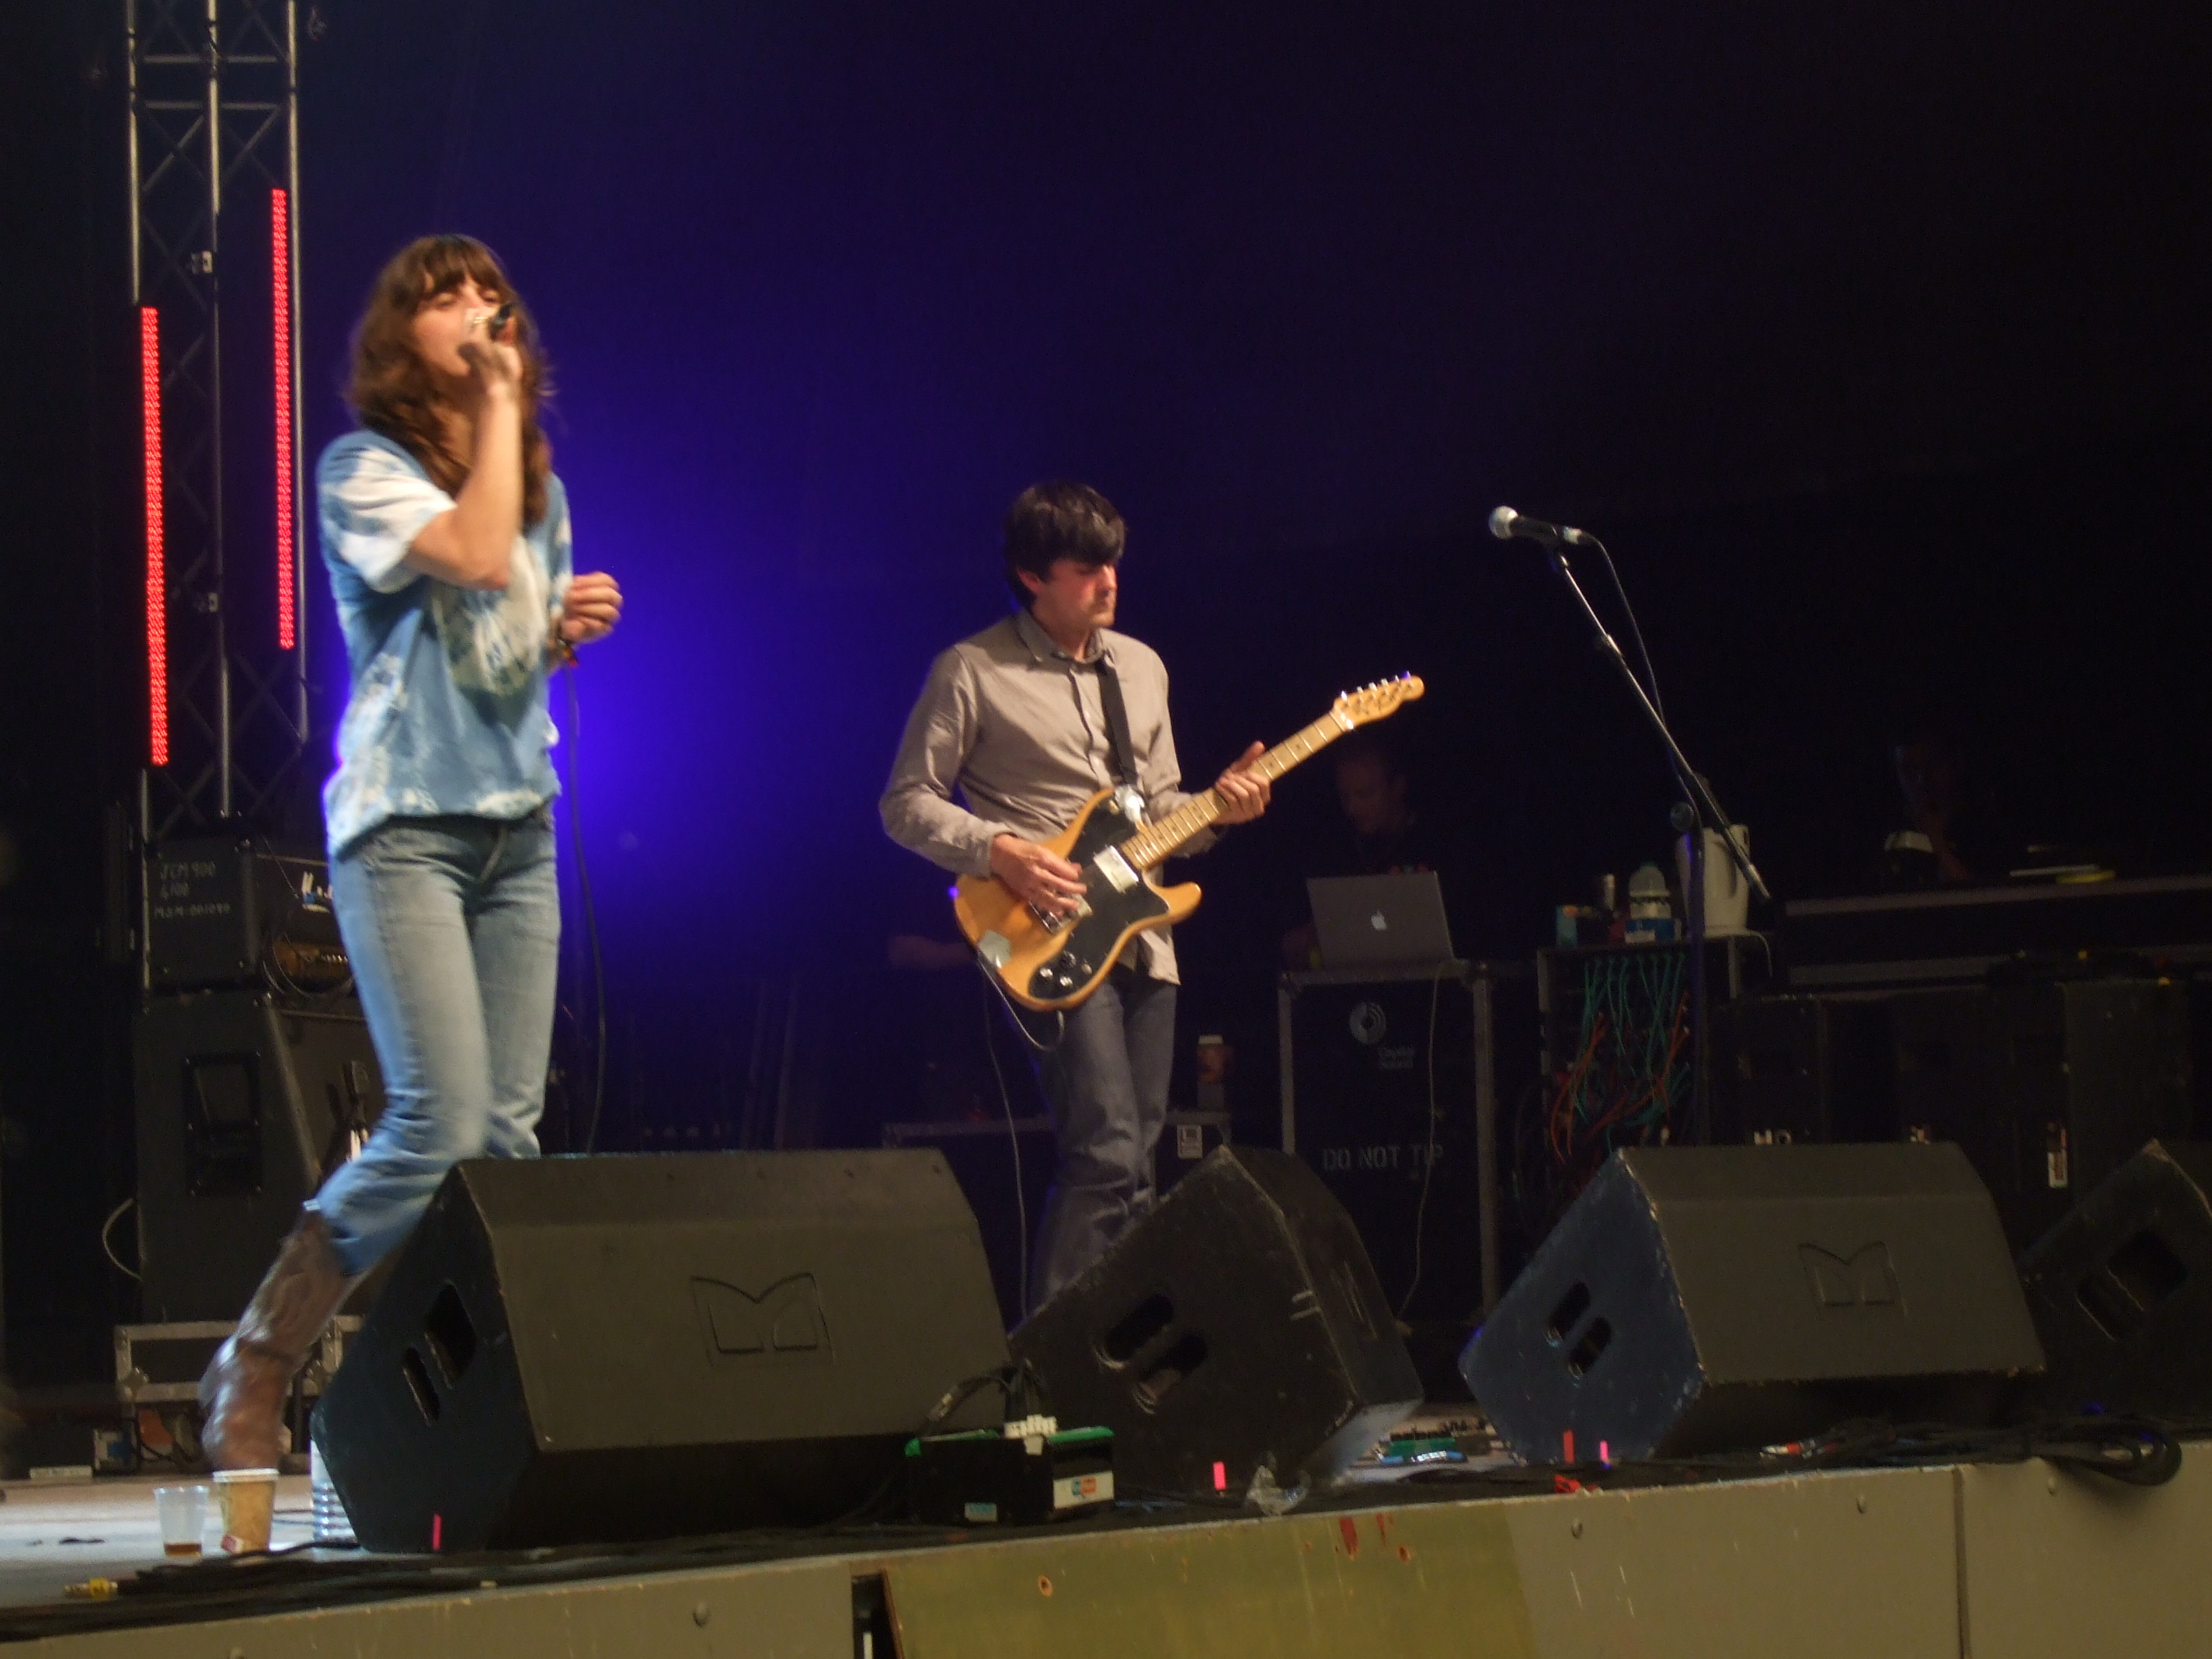 Fiery Furnaces at ATP Pavement